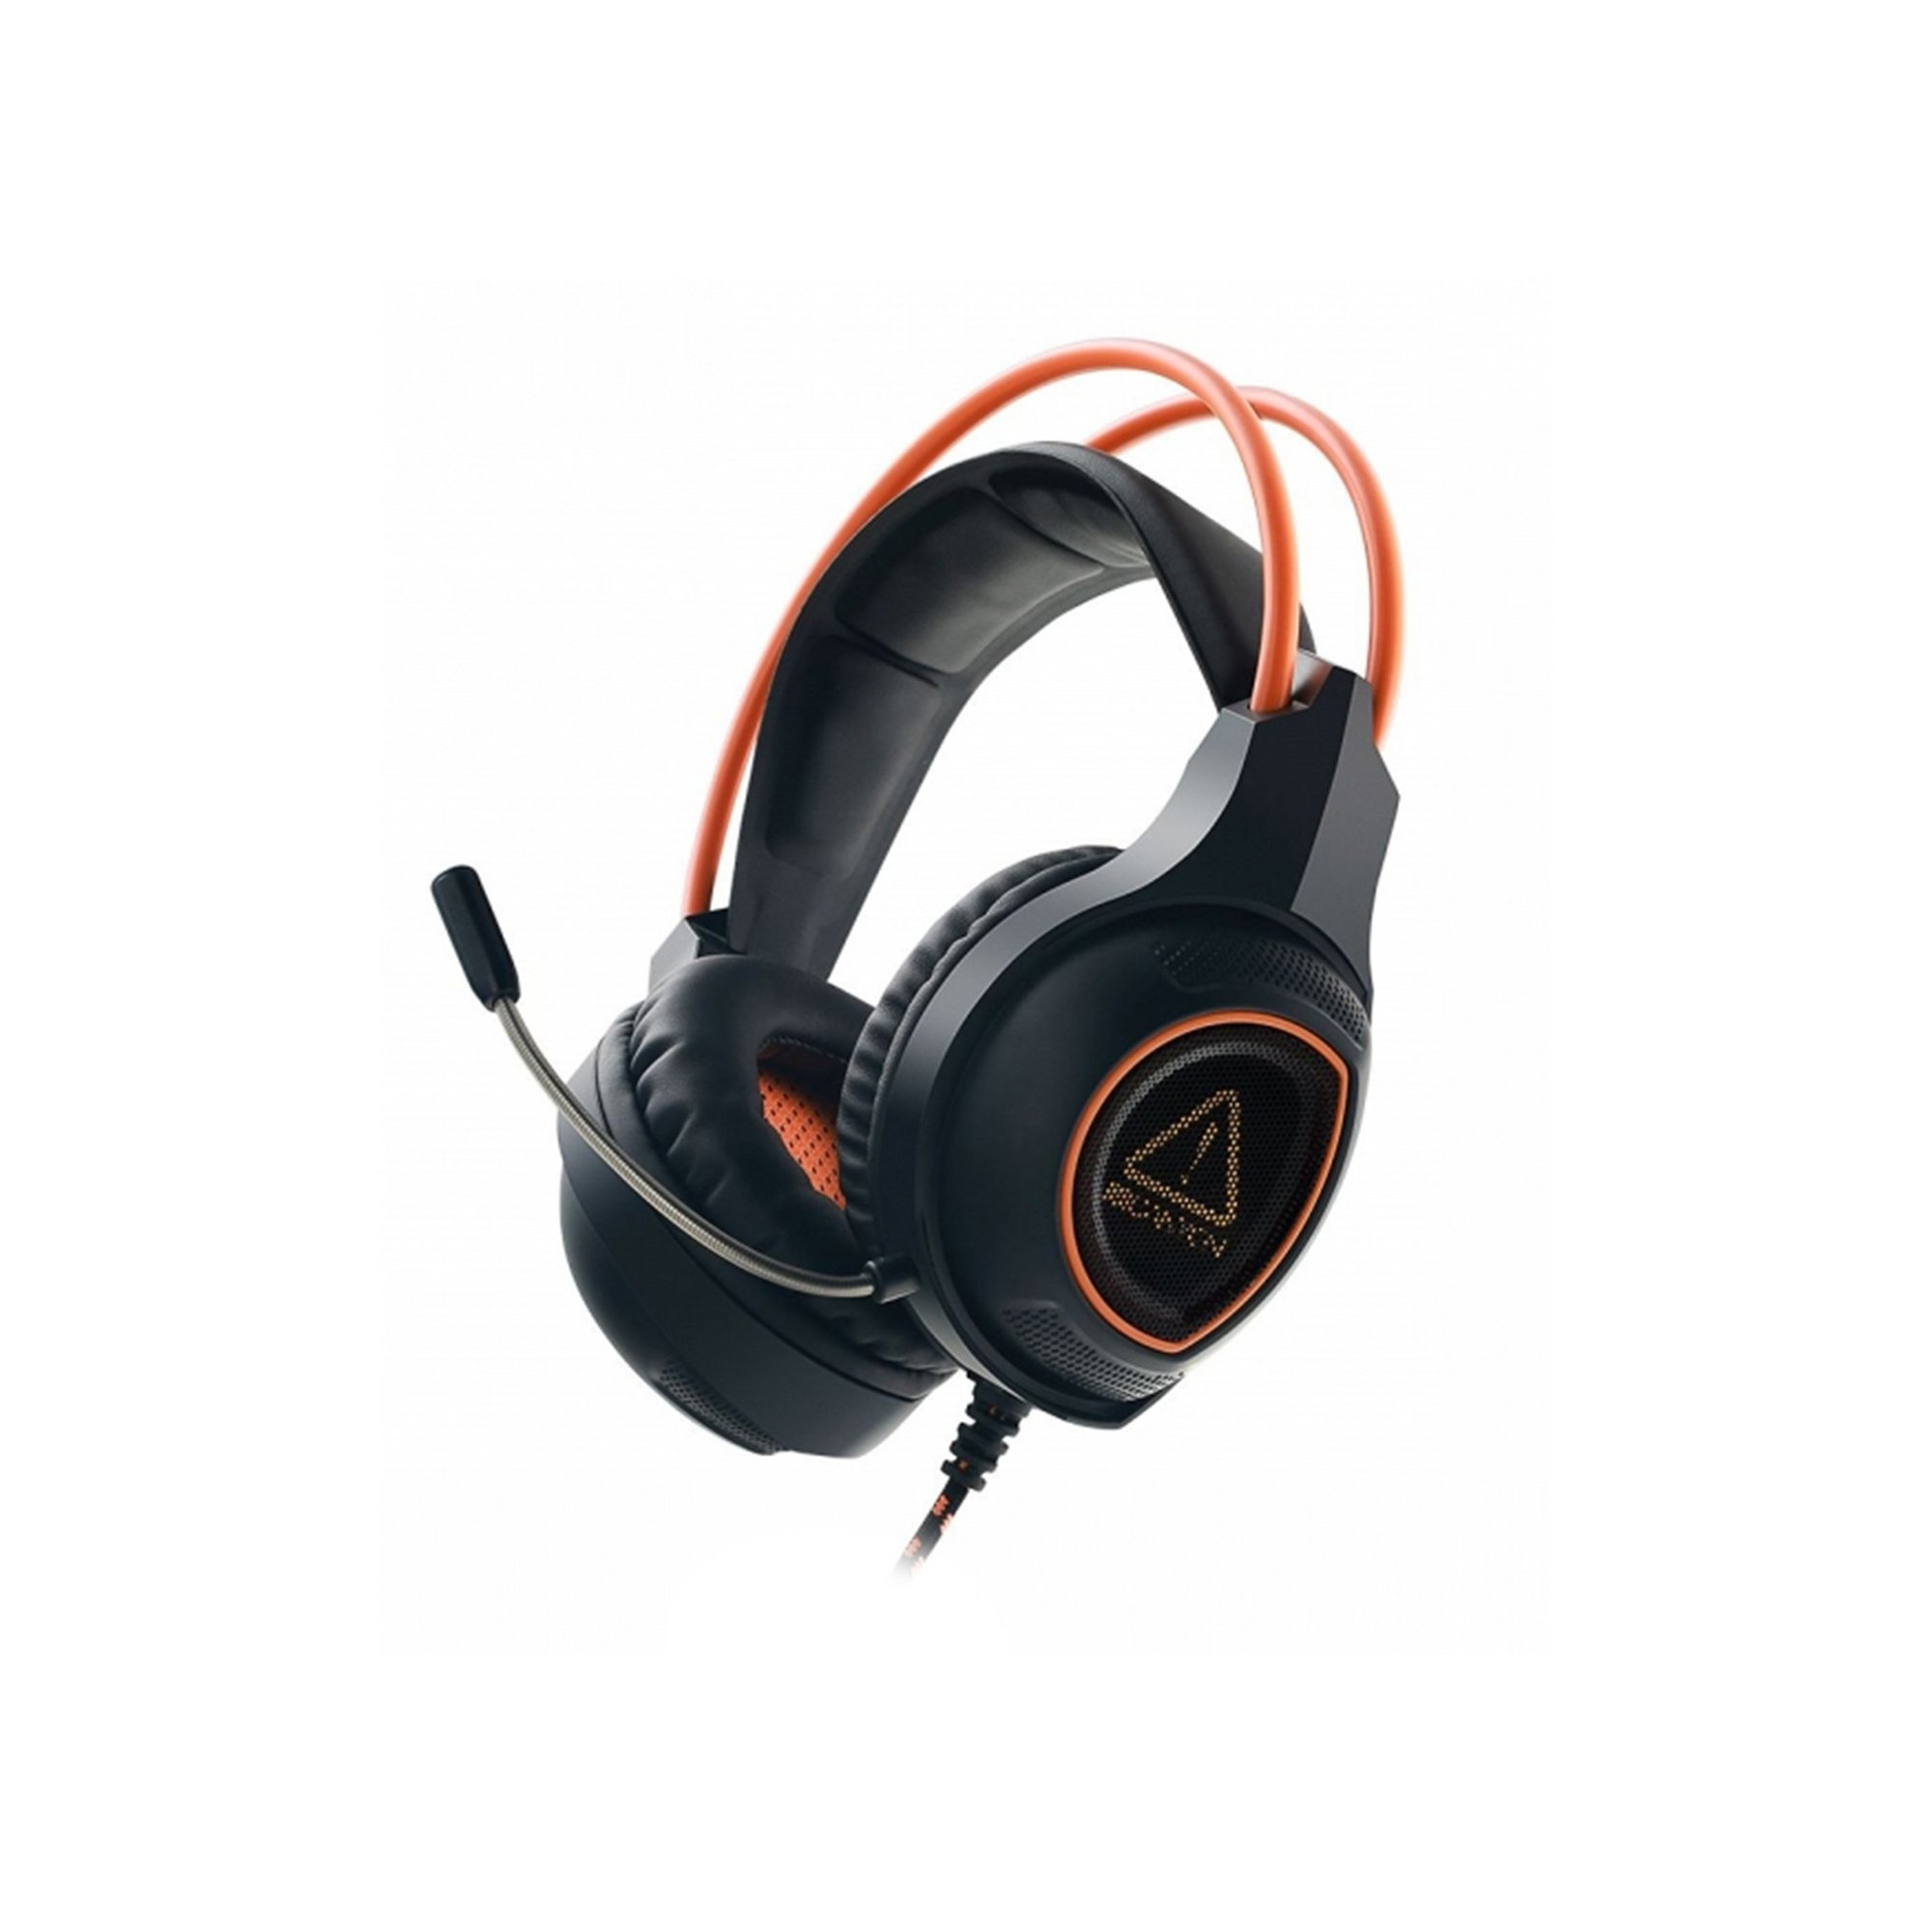 Image of Canyon 7.1 Usb Gaming Headset With Microphone - Orange